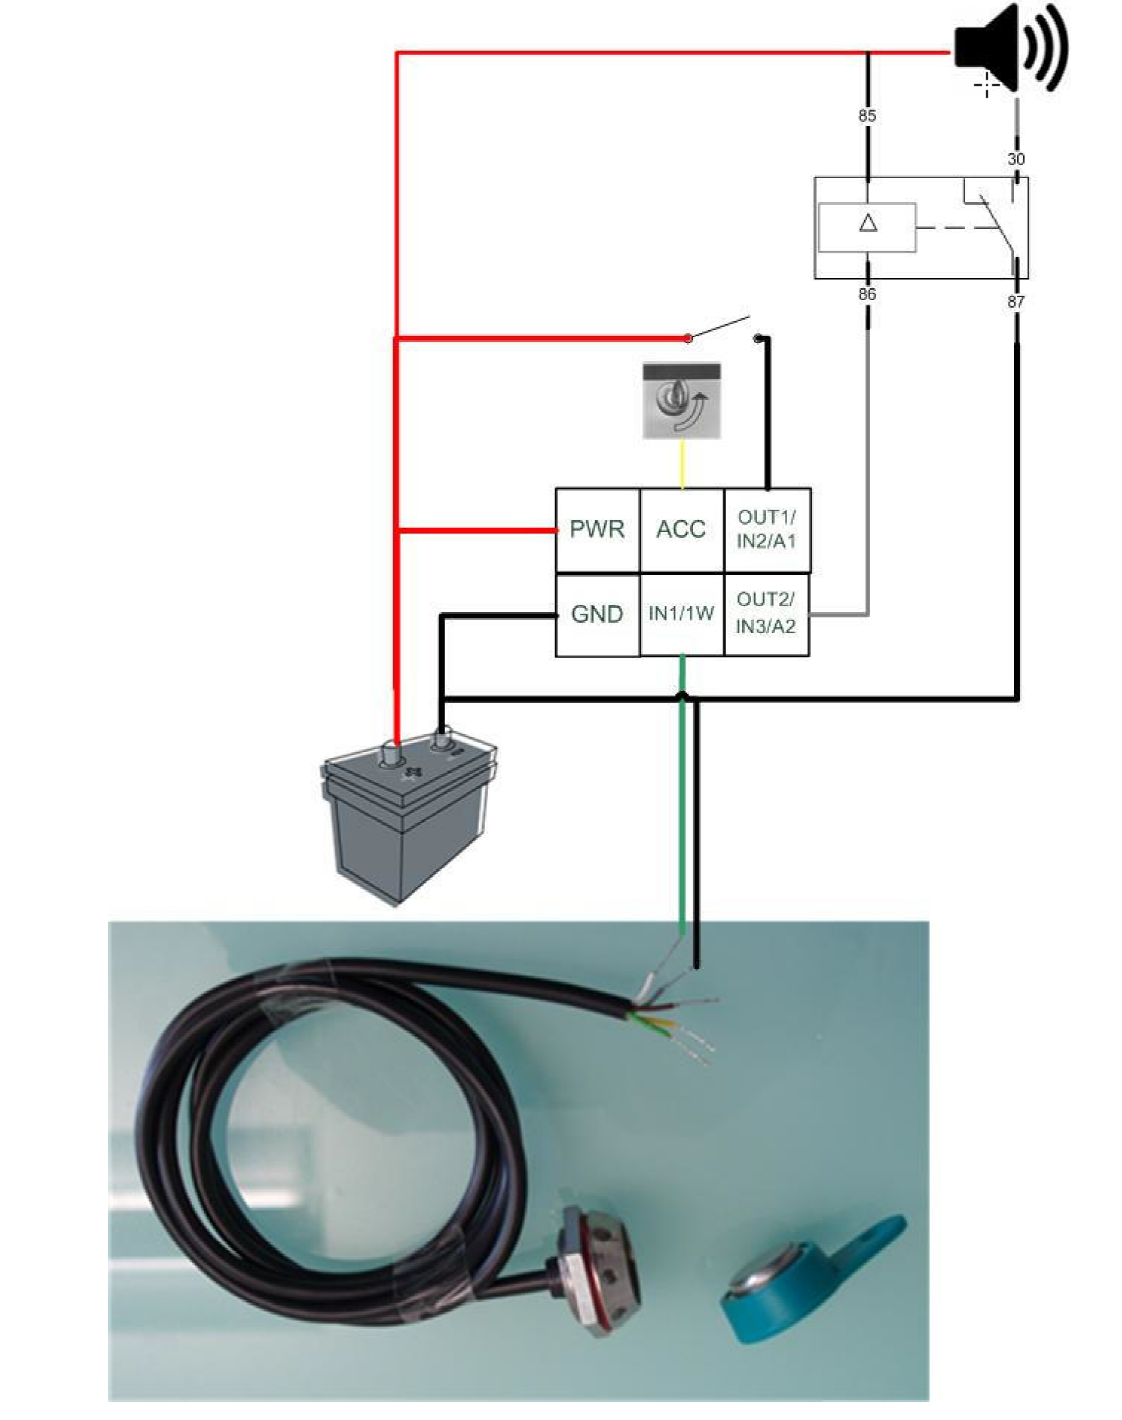 image2015 5 12 14%3A5%3A12?version=1&modificationDate=1431432359069&api=v2 gps dynamic einbauanleitung ak1 Basic Electrical Wiring Diagrams at readyjetset.co